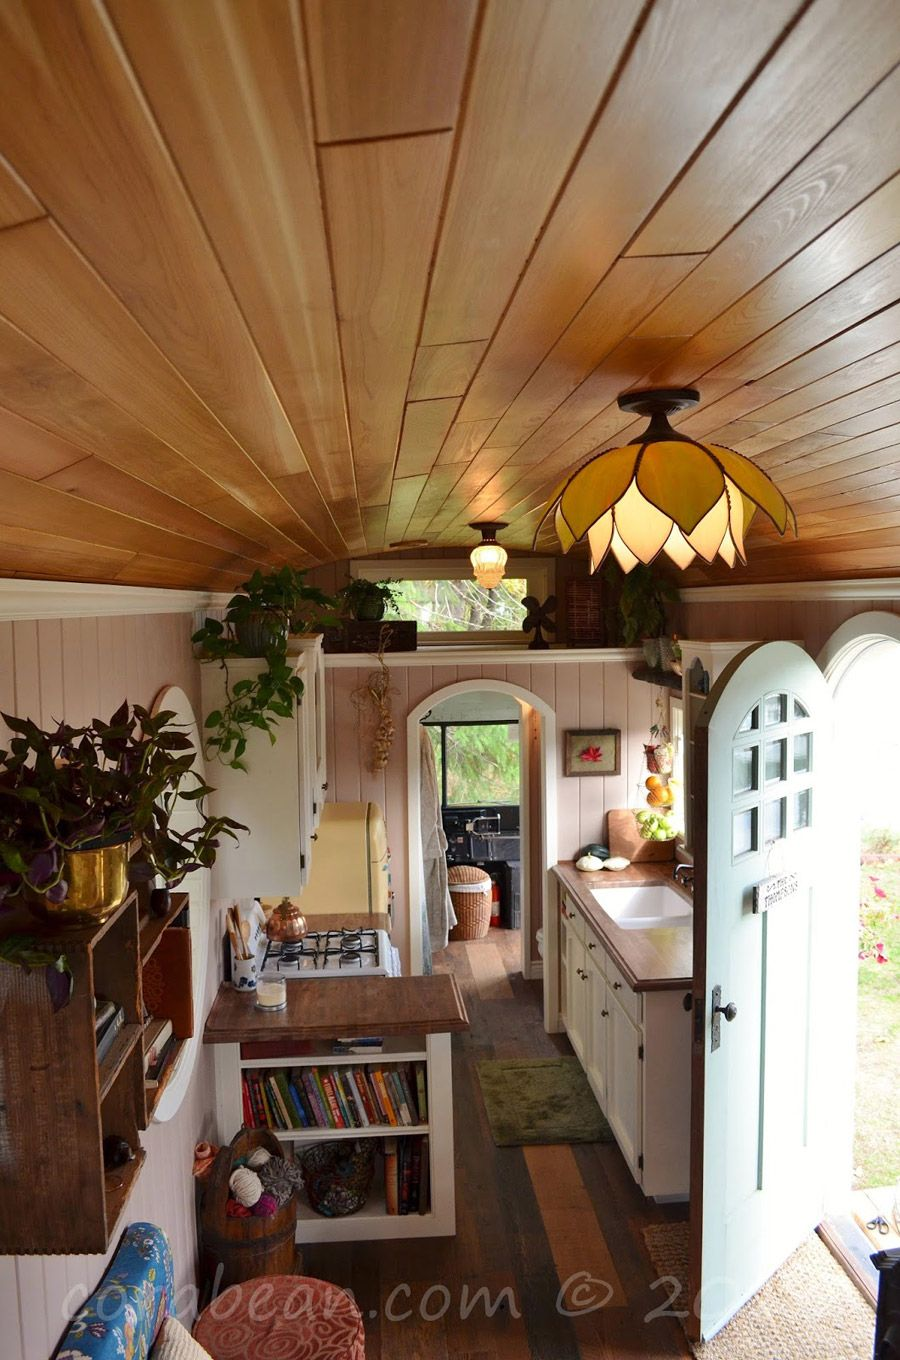 A Retired School Bus Completely Transformed Into Micro Living Space In Portland Oregon